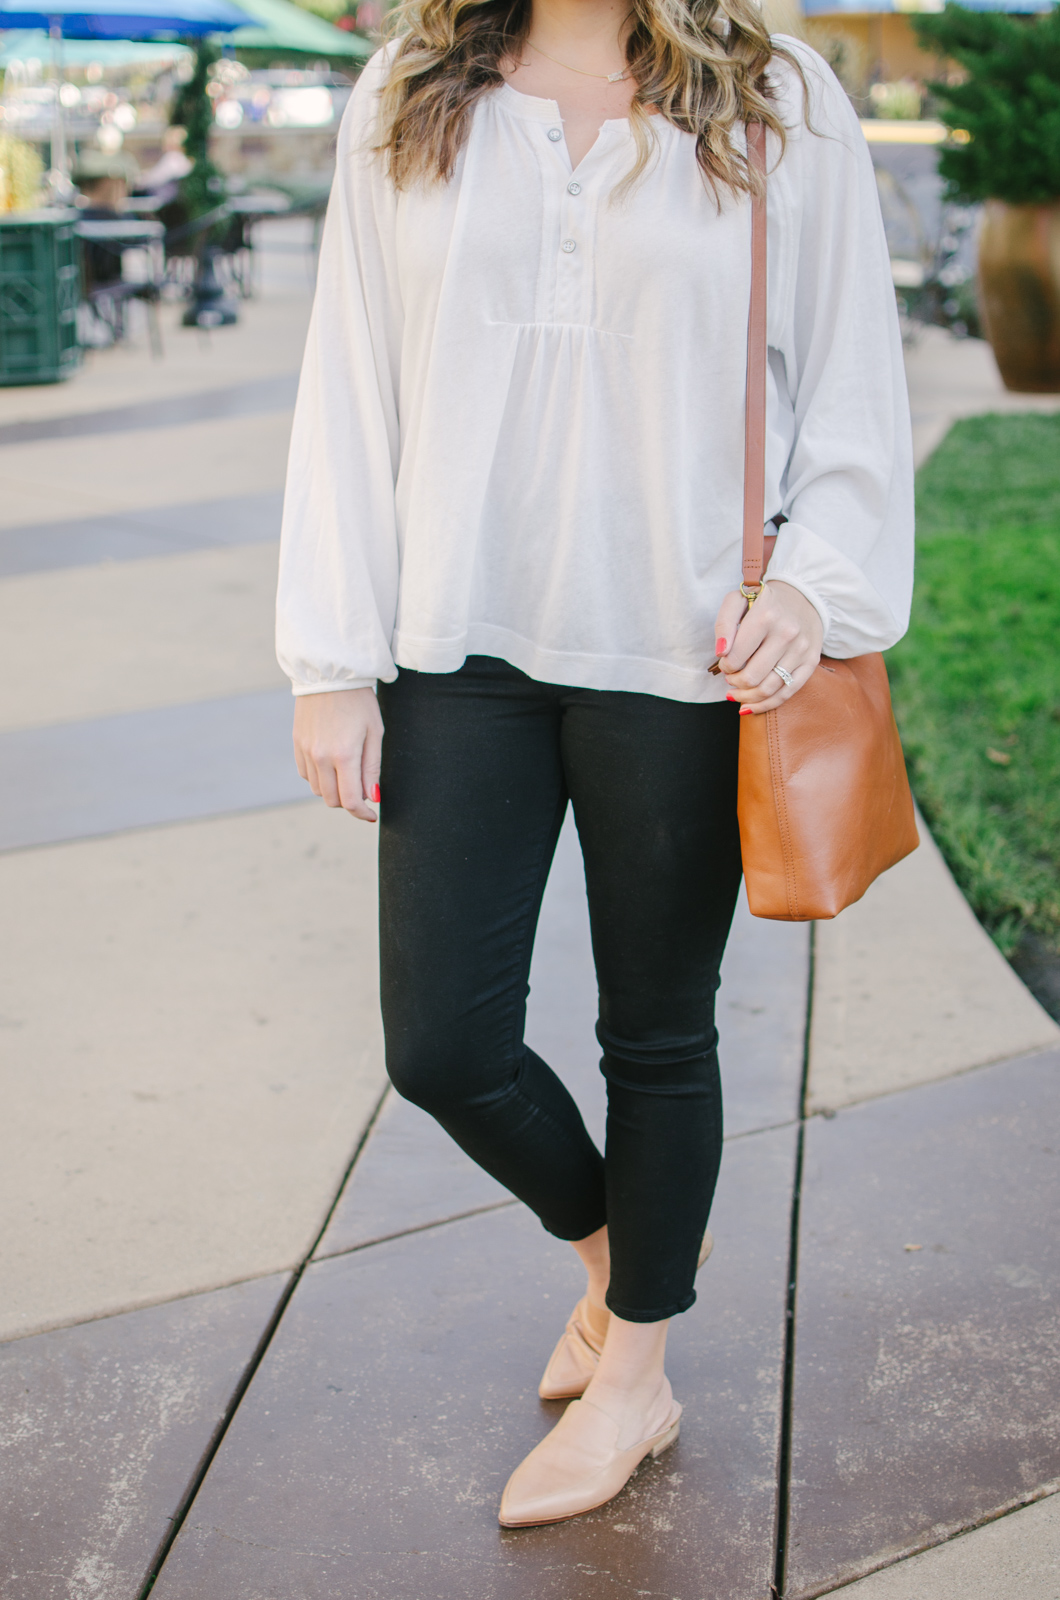 free people henley outfit - classic black and white outfit | For more everyday casual outfits, head to bylaurenm.com!